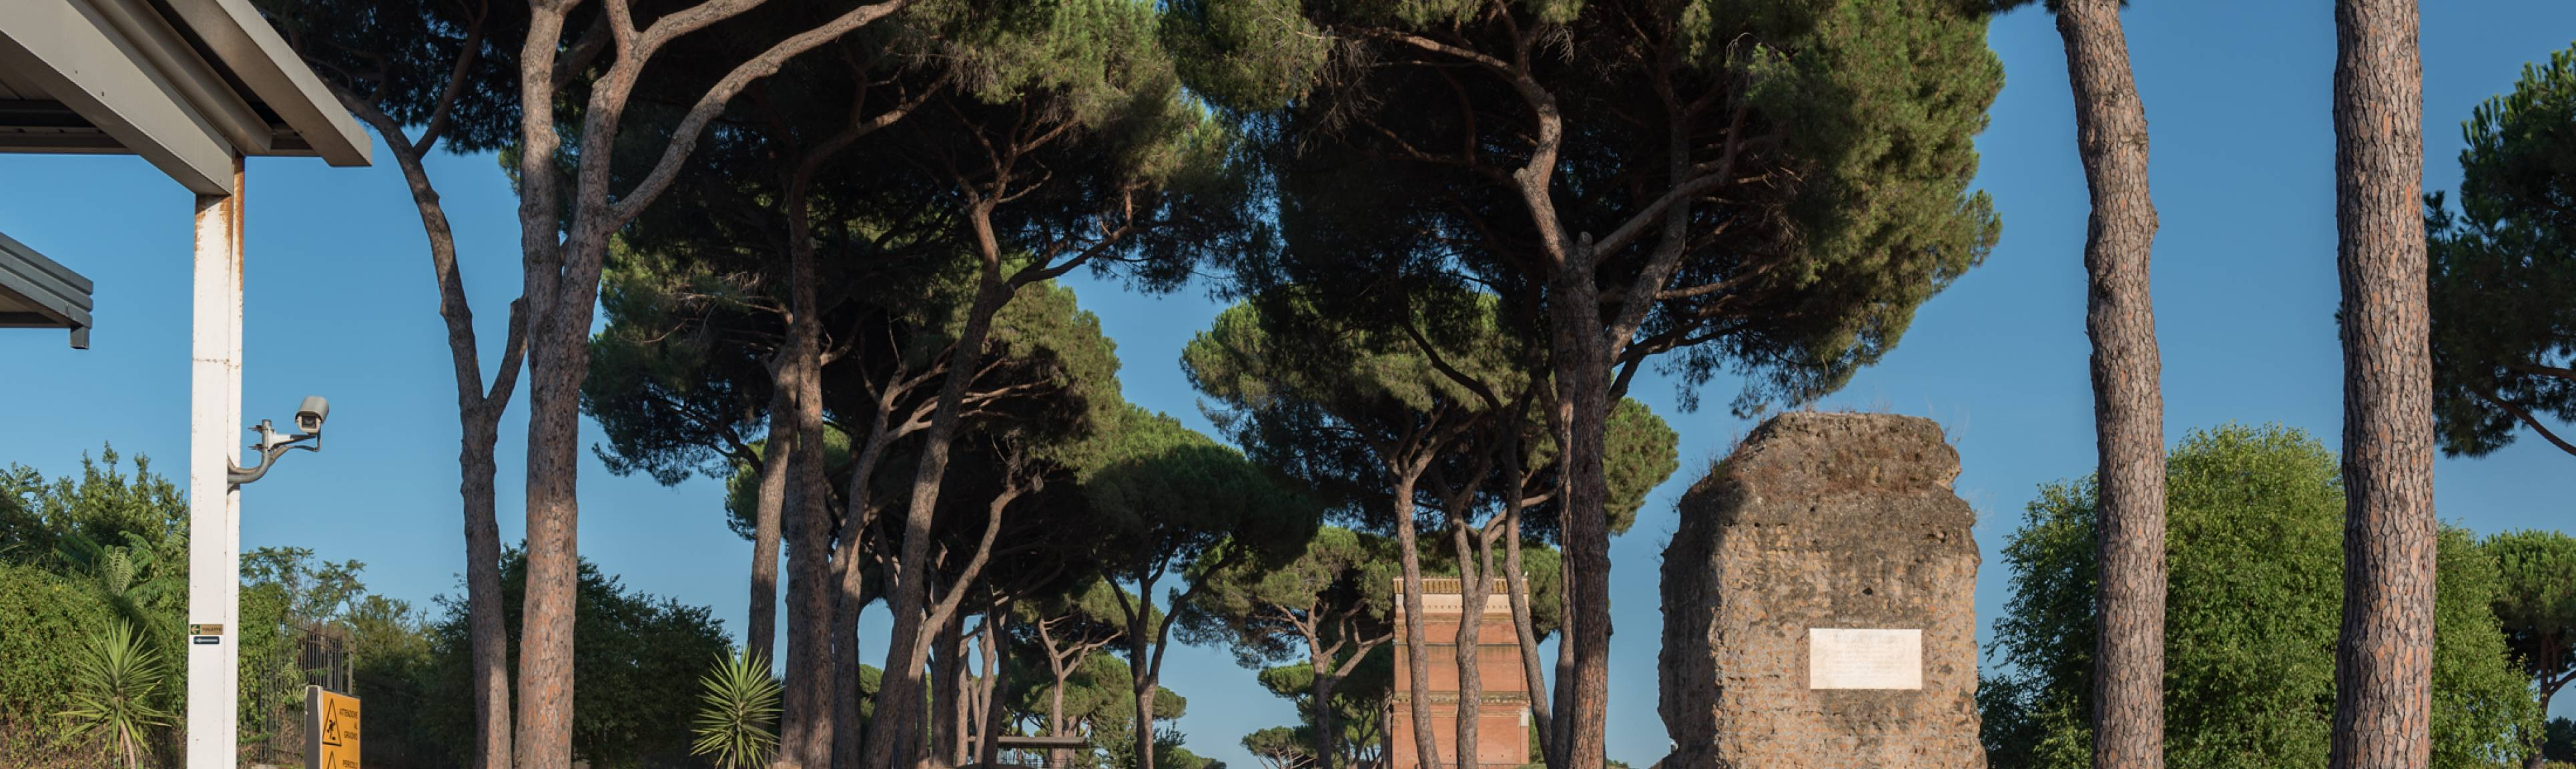 Tree lined view of the Appian Way near the Catacombs in Rome